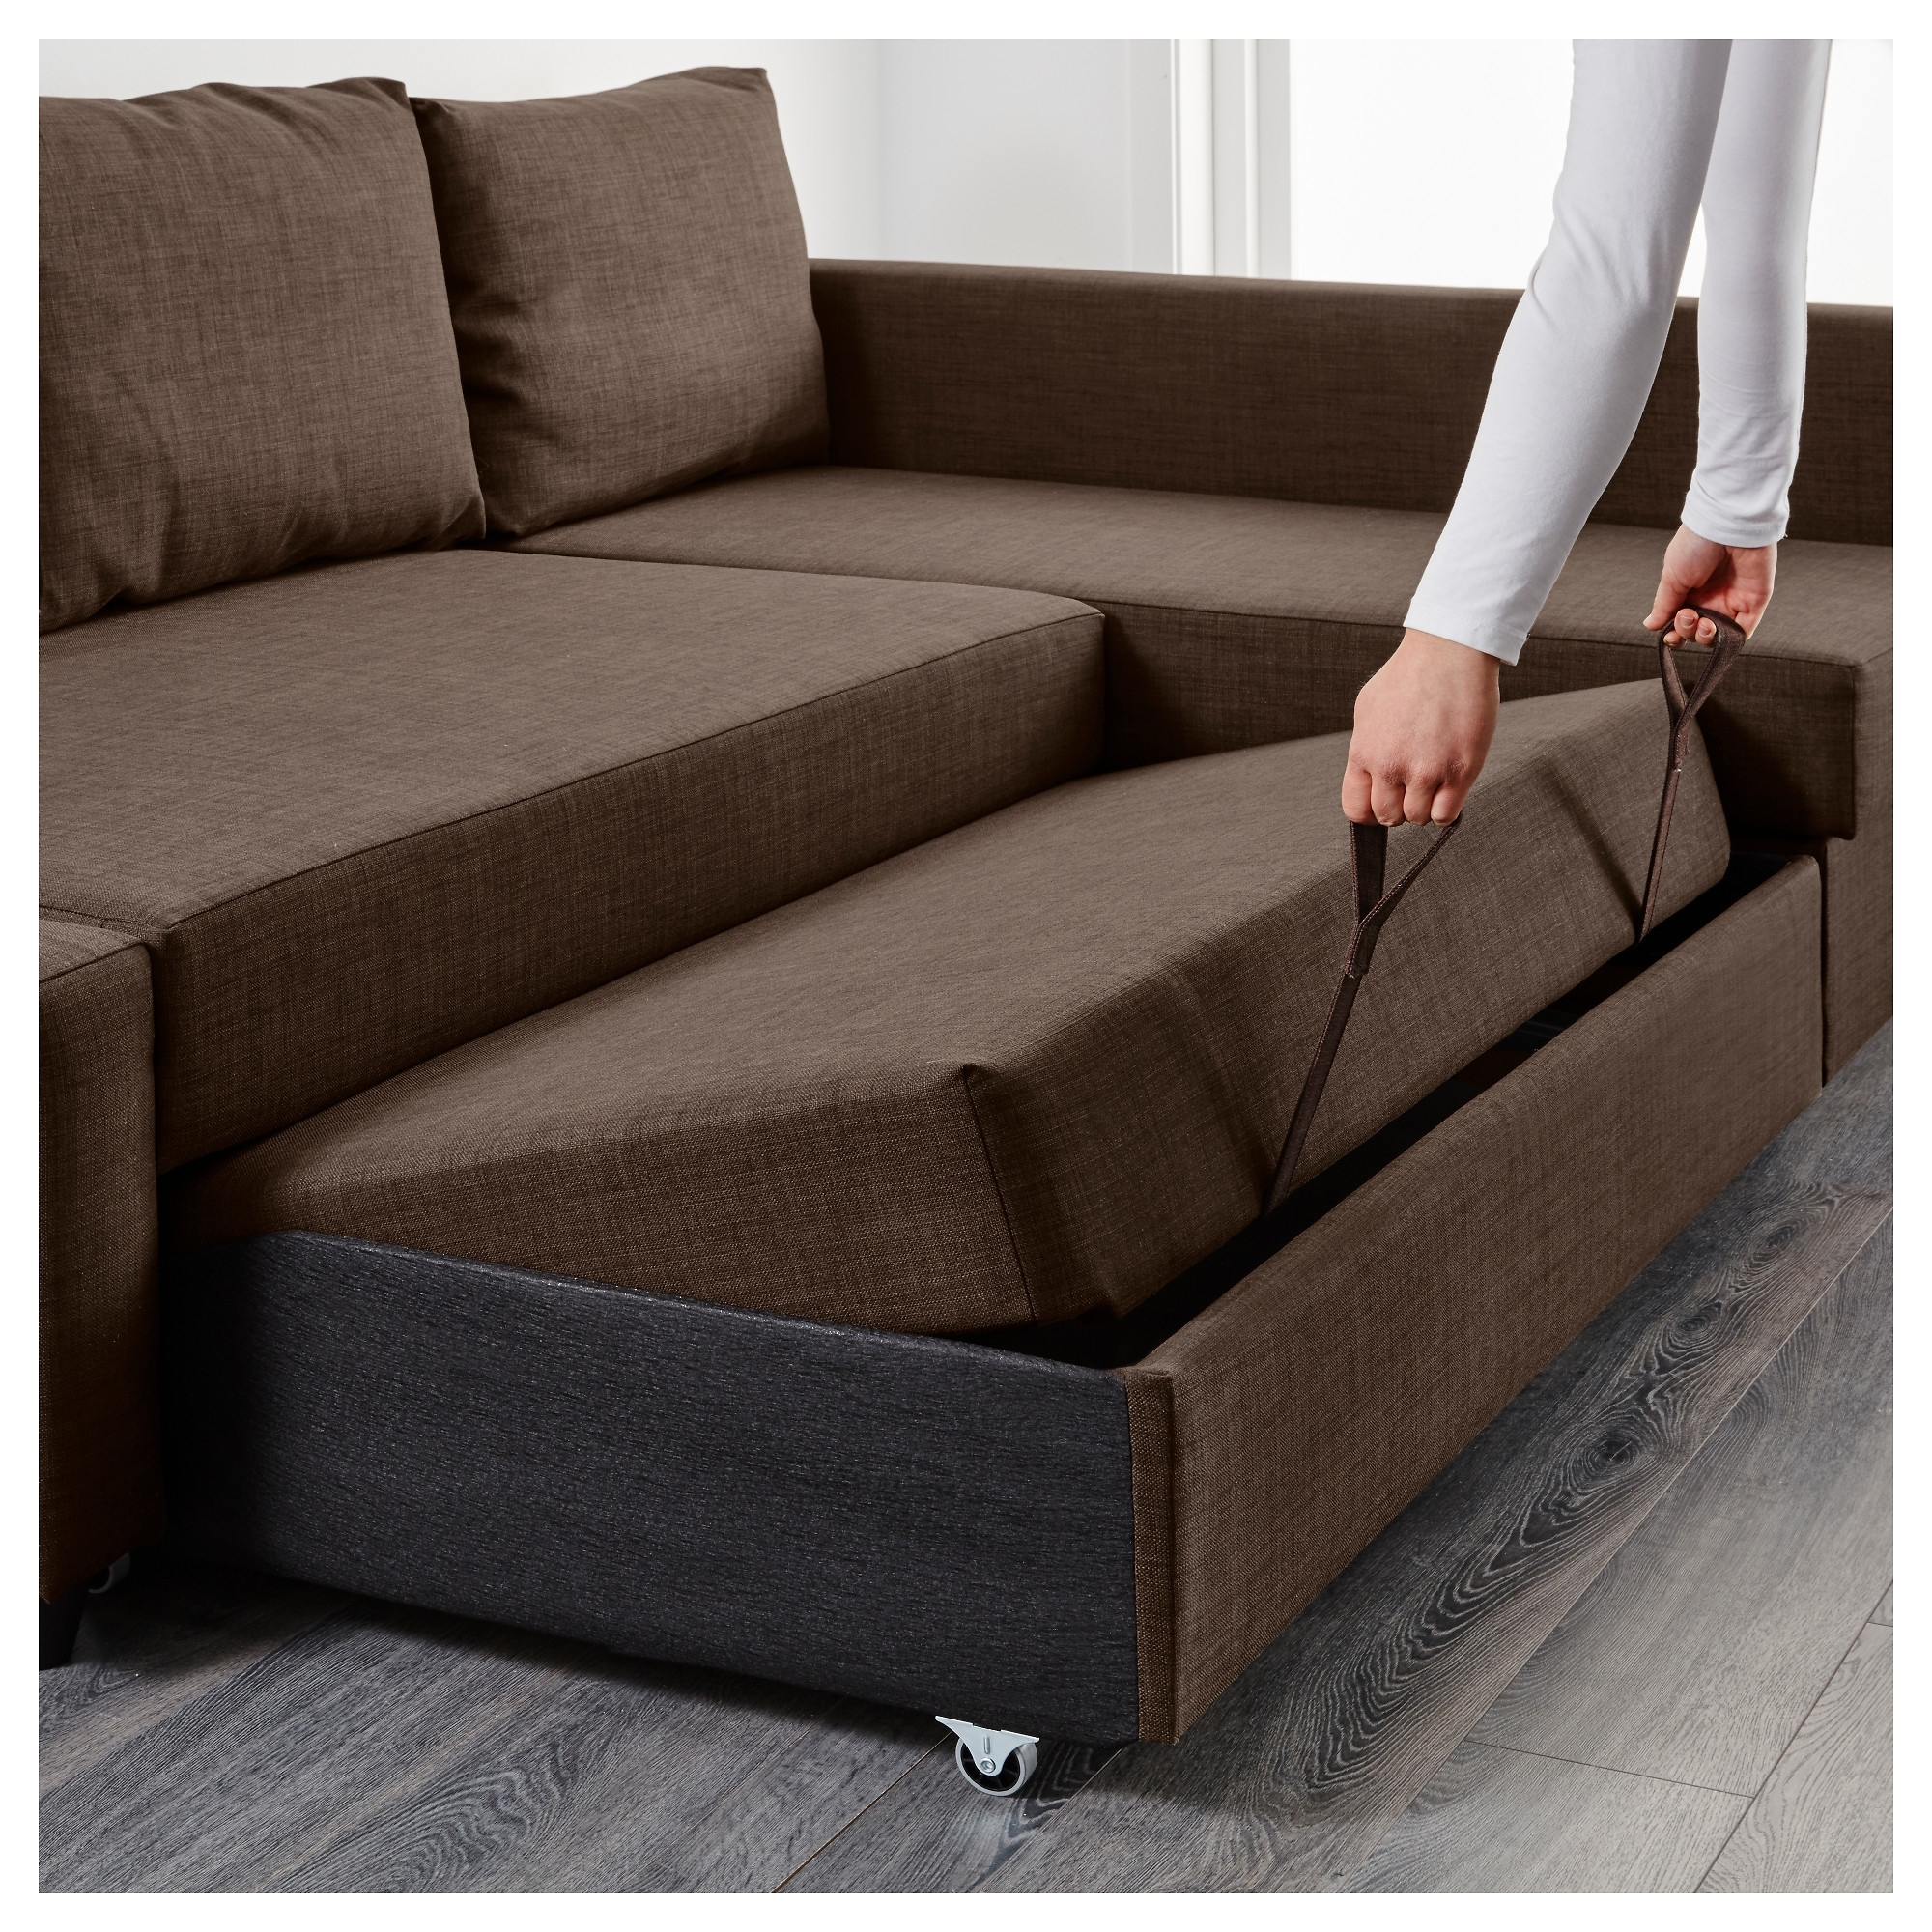 Widely Used Sofa Chaise Convertible Beds Inside Friheten Sleeper Sectional,3 Seat W/storage – Skiftebo Dark Gray (View 15 of 15)